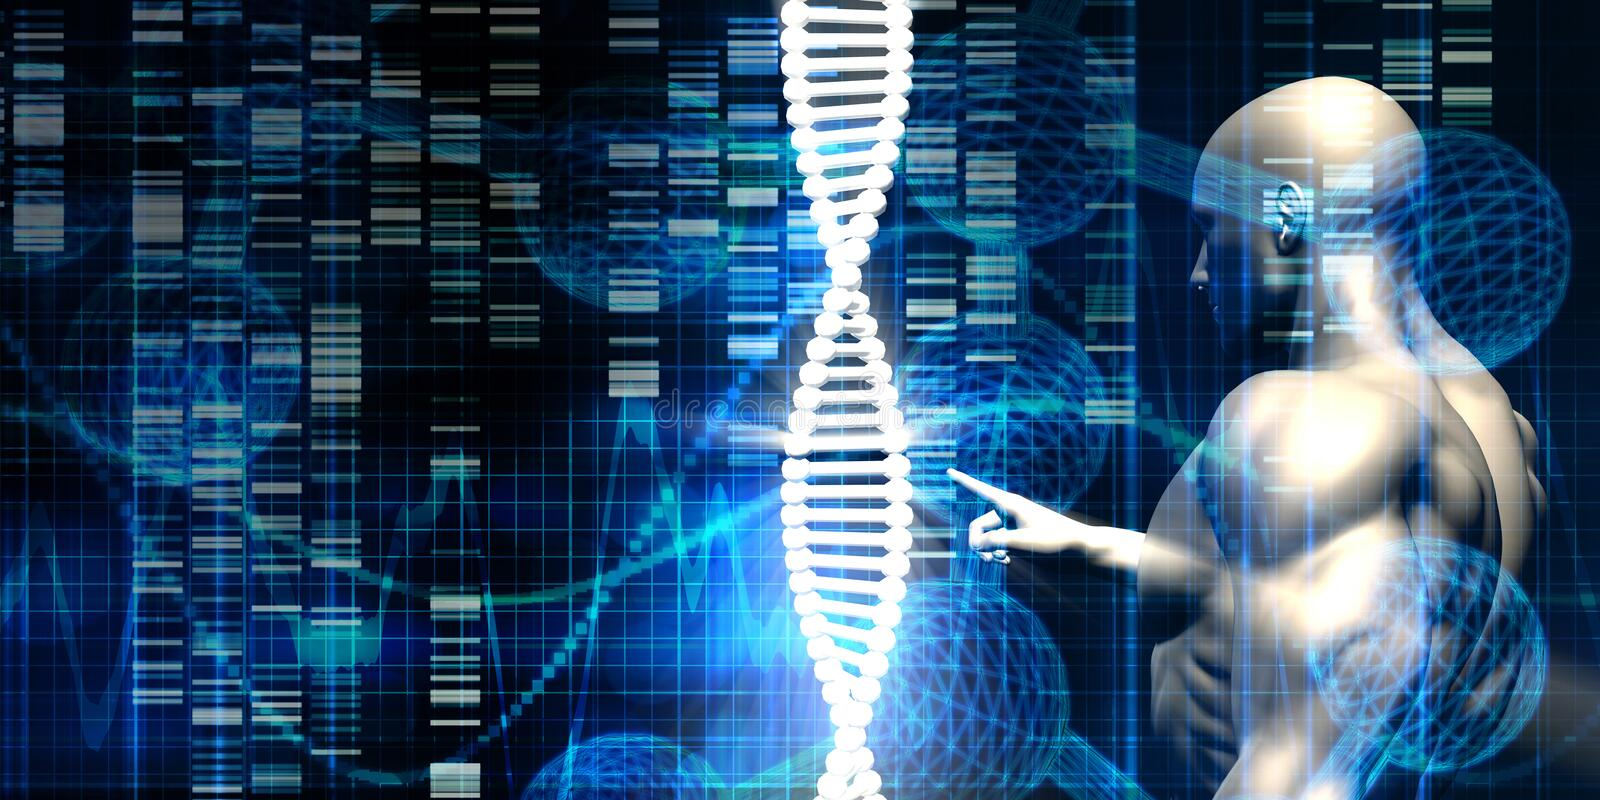 Genetic Engineering Industry stock illustration